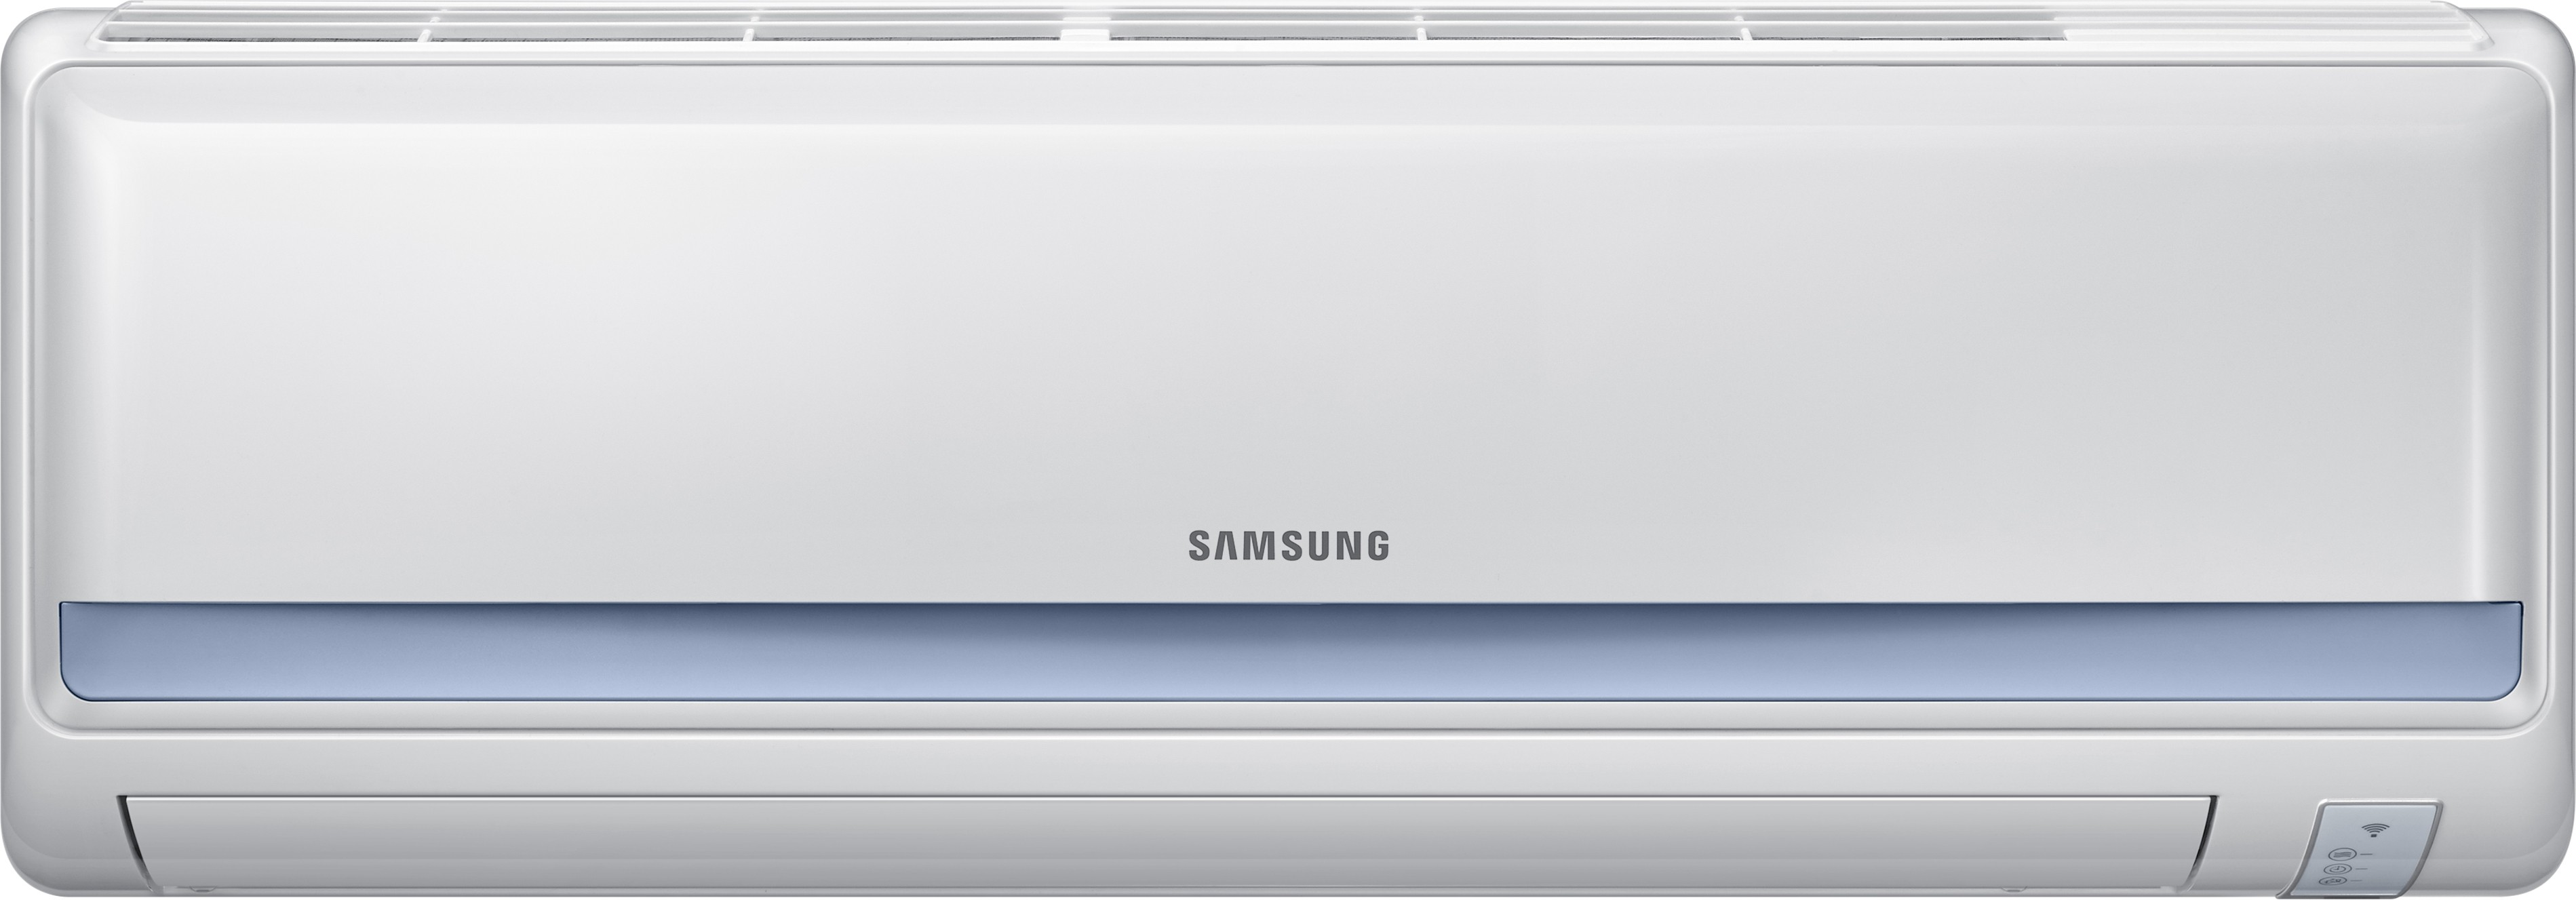 Deals - Chennai - From ₹29,990 <br> Samsung Air Conditioners<br> Category - home_kitchen<br> Business - Flipkart.com